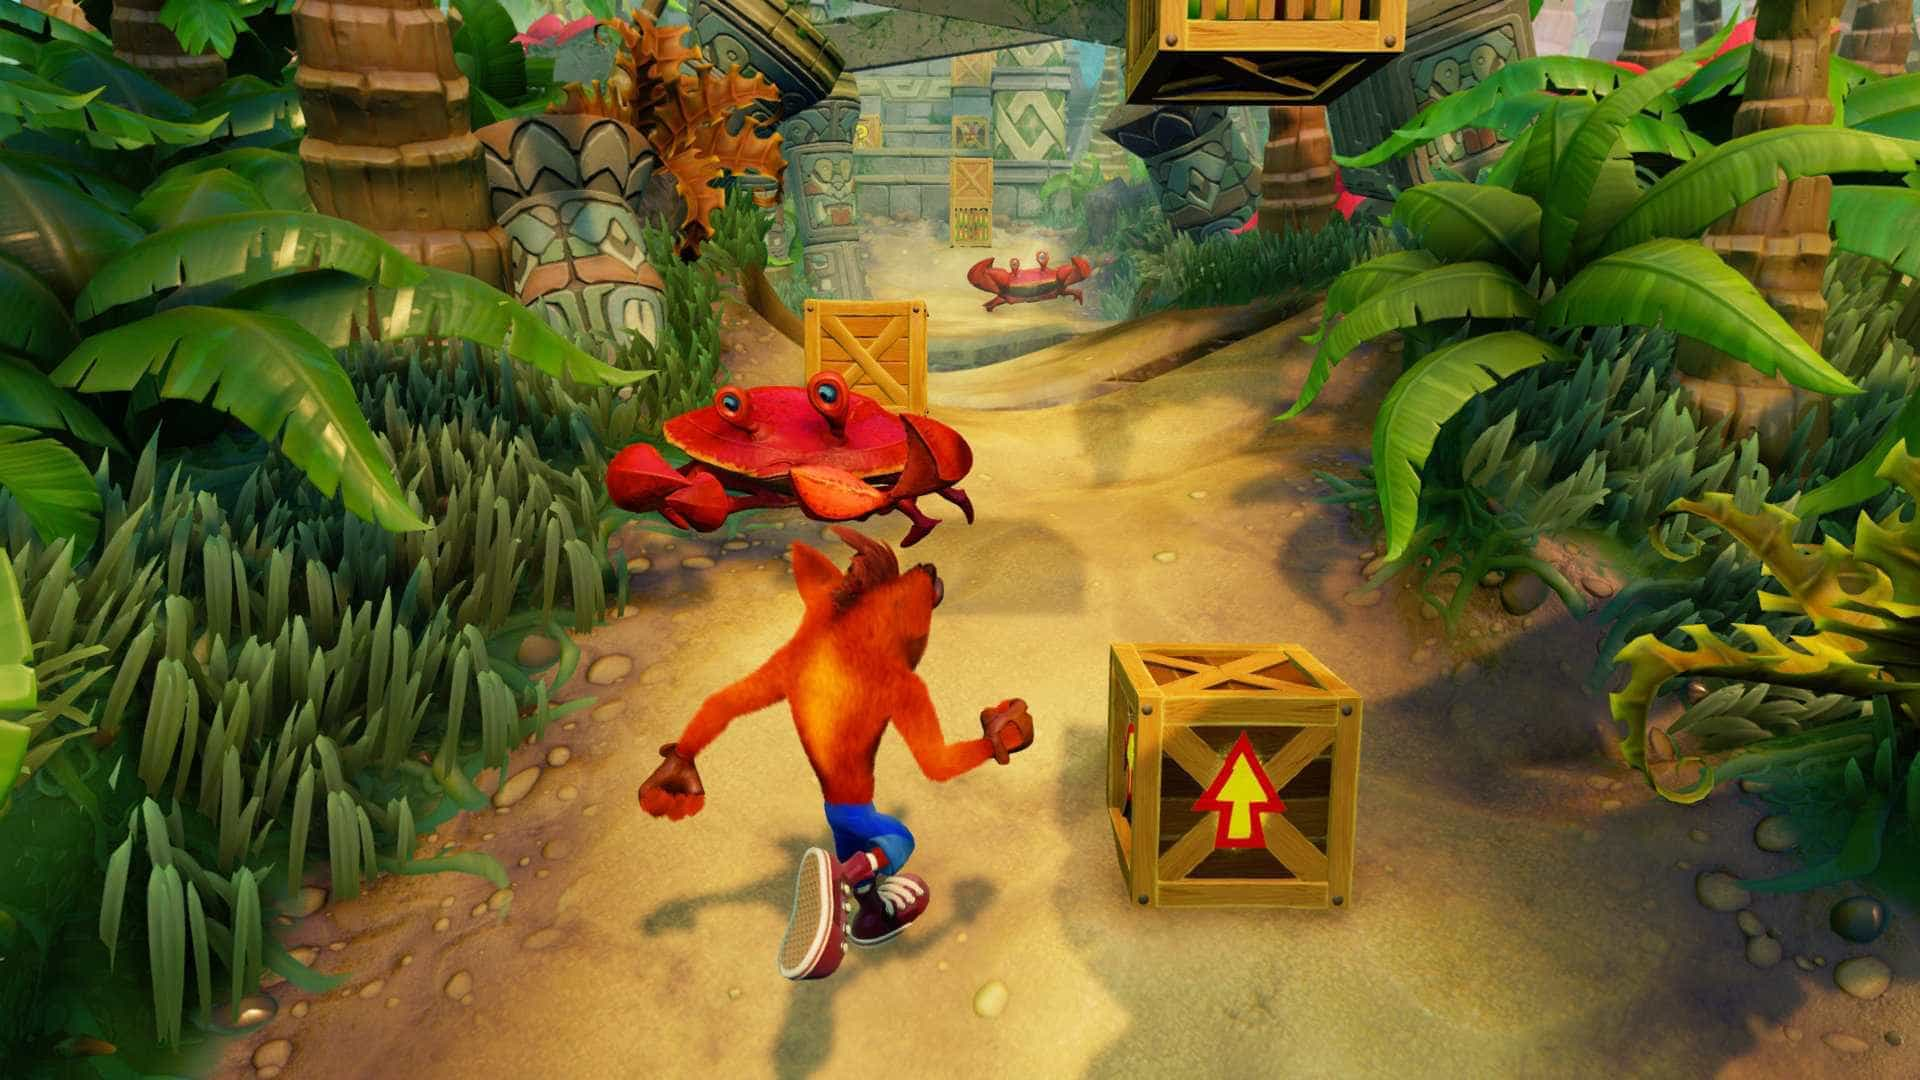 Activision antecipa remaster de Crash Bandicoot para Xbox One, Switch e PC